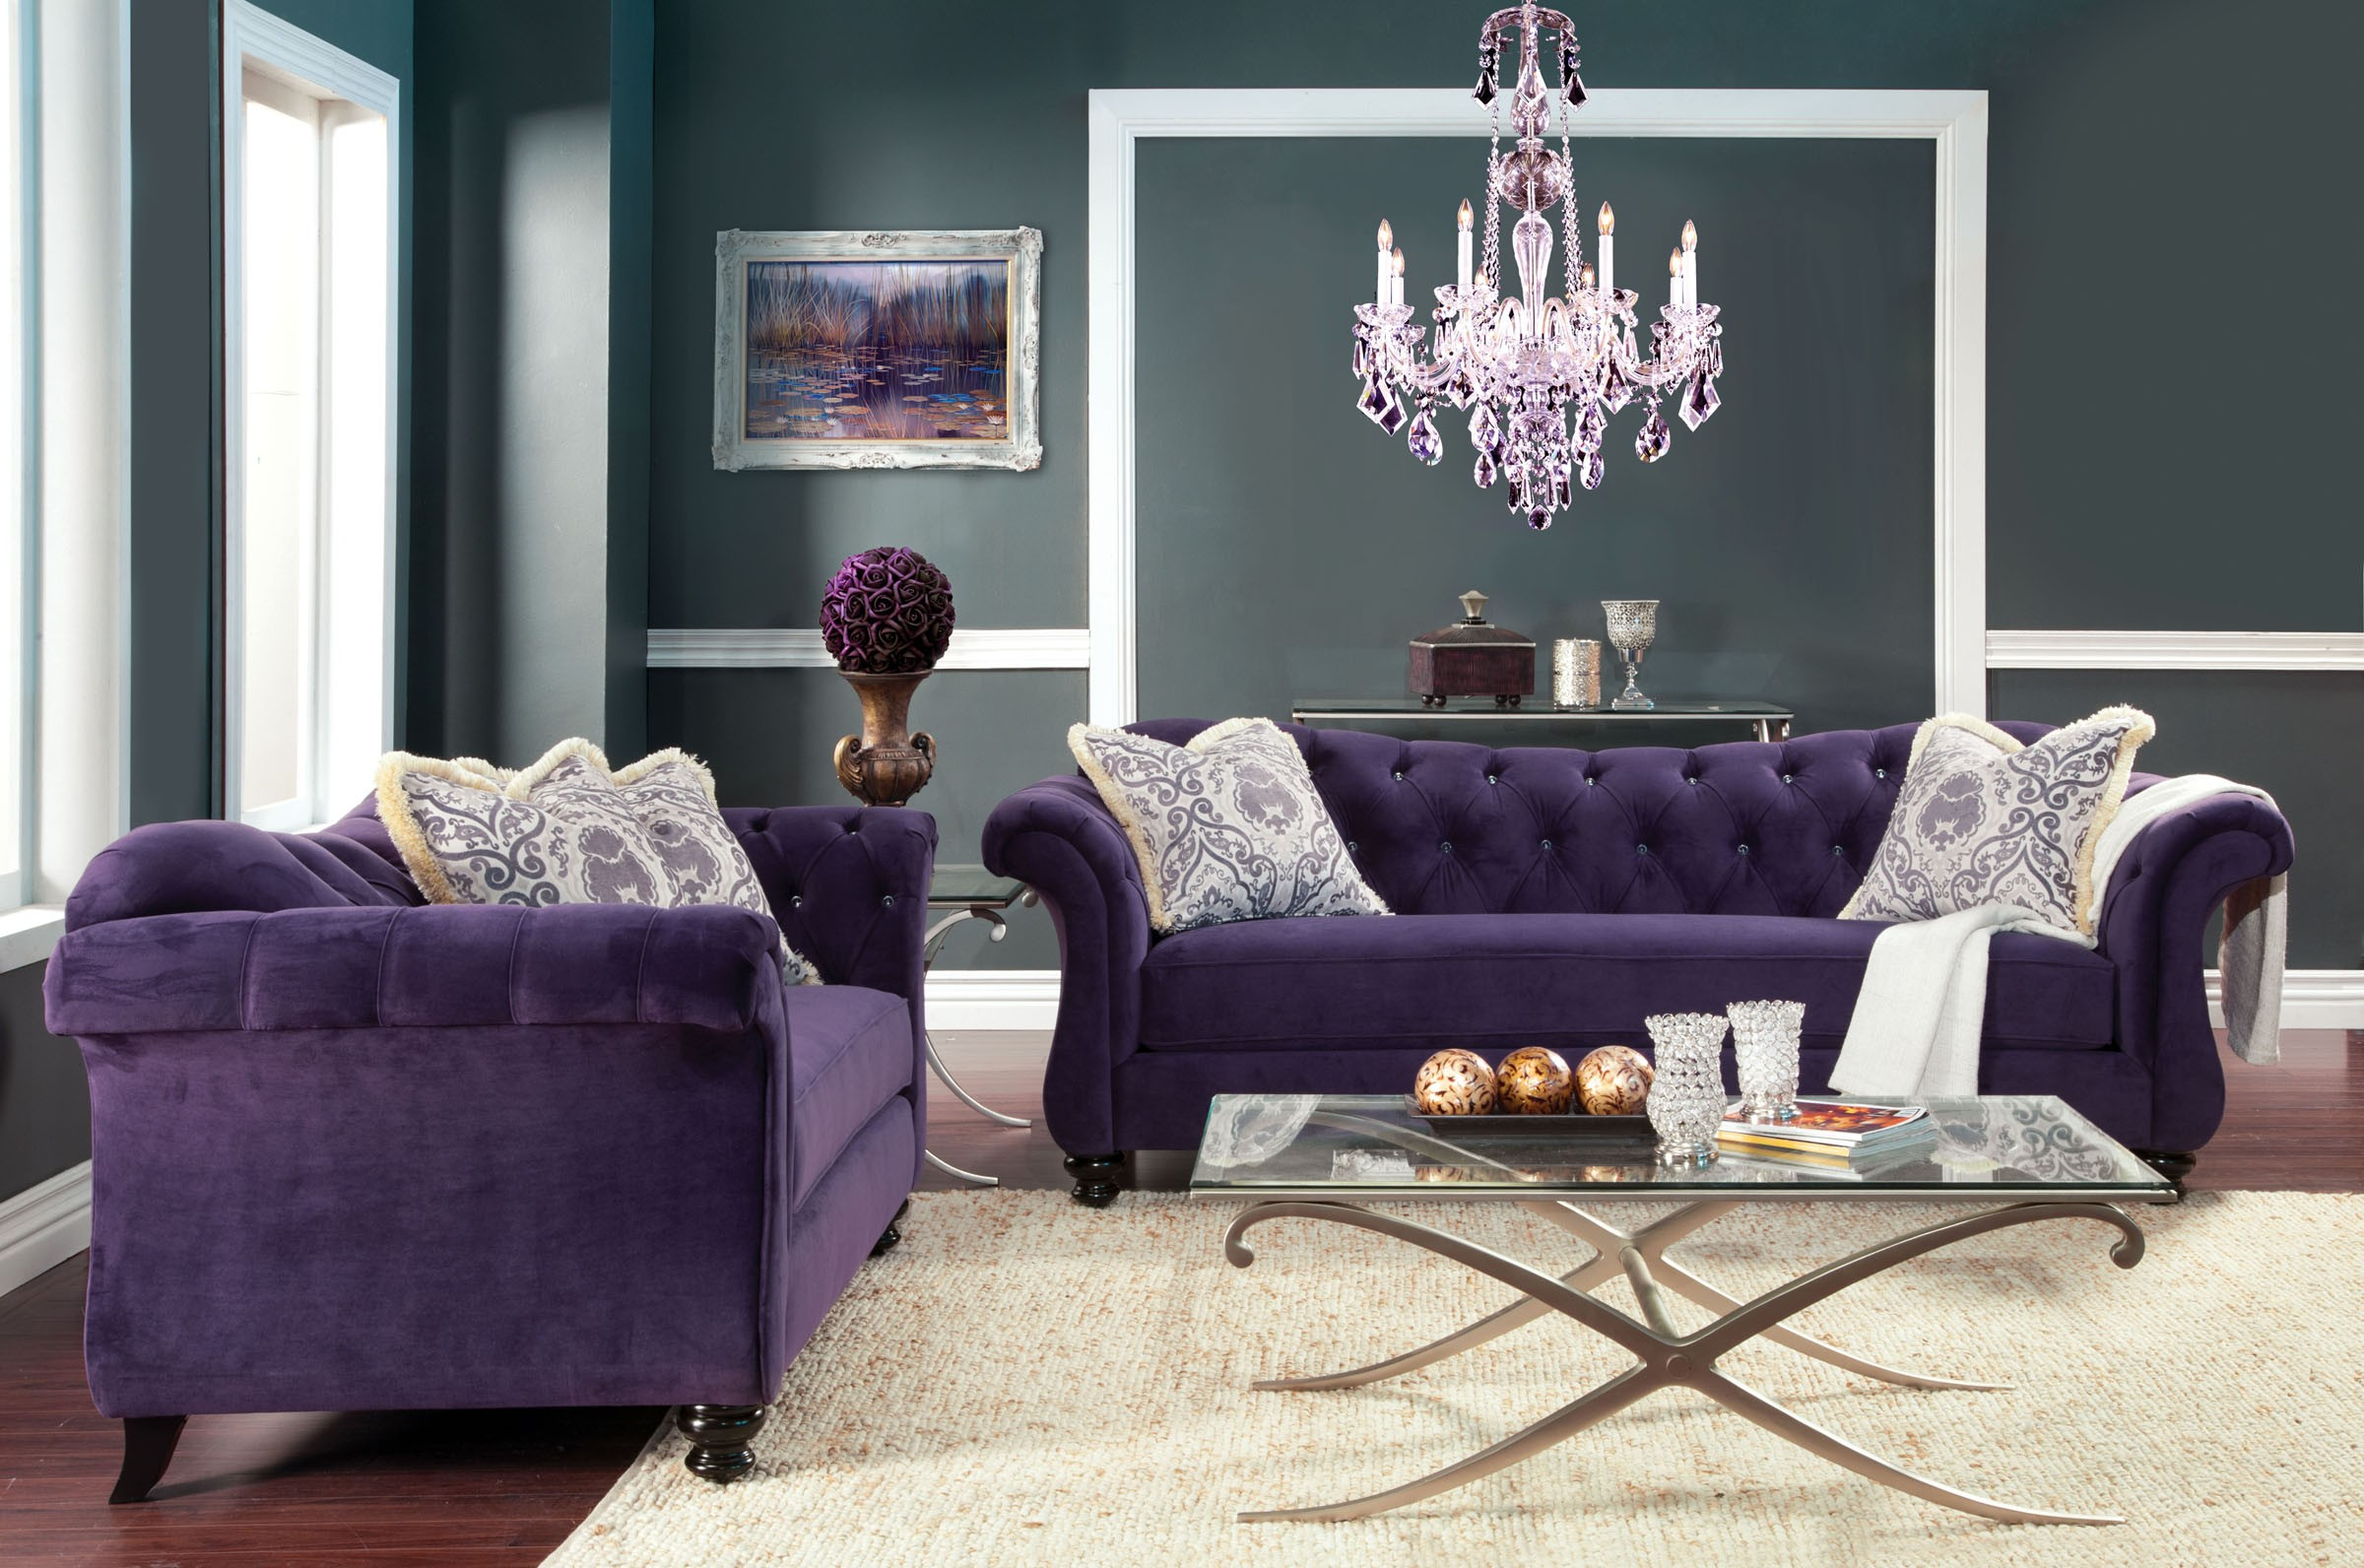 2 Piece Antoinette Collection Purple Chesterfield Love Seat and Sofa Set